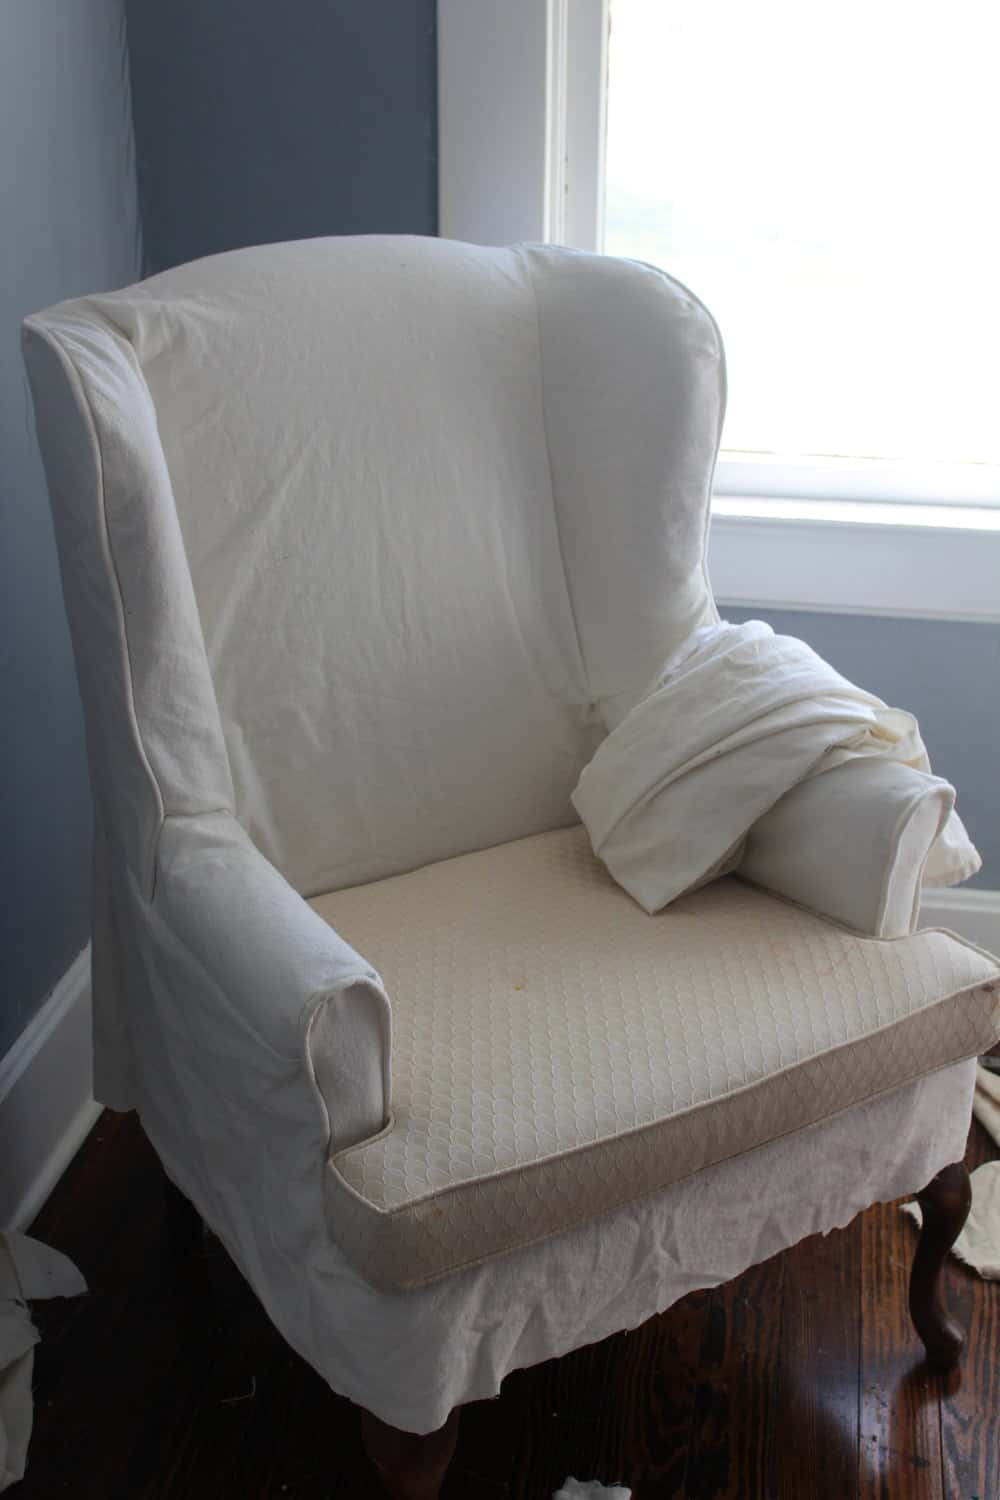 After The Main Portion Of The Slipcover Was Finished, I Added A Ruffle And  Piping To The Bottom Edge To Finish It Off.